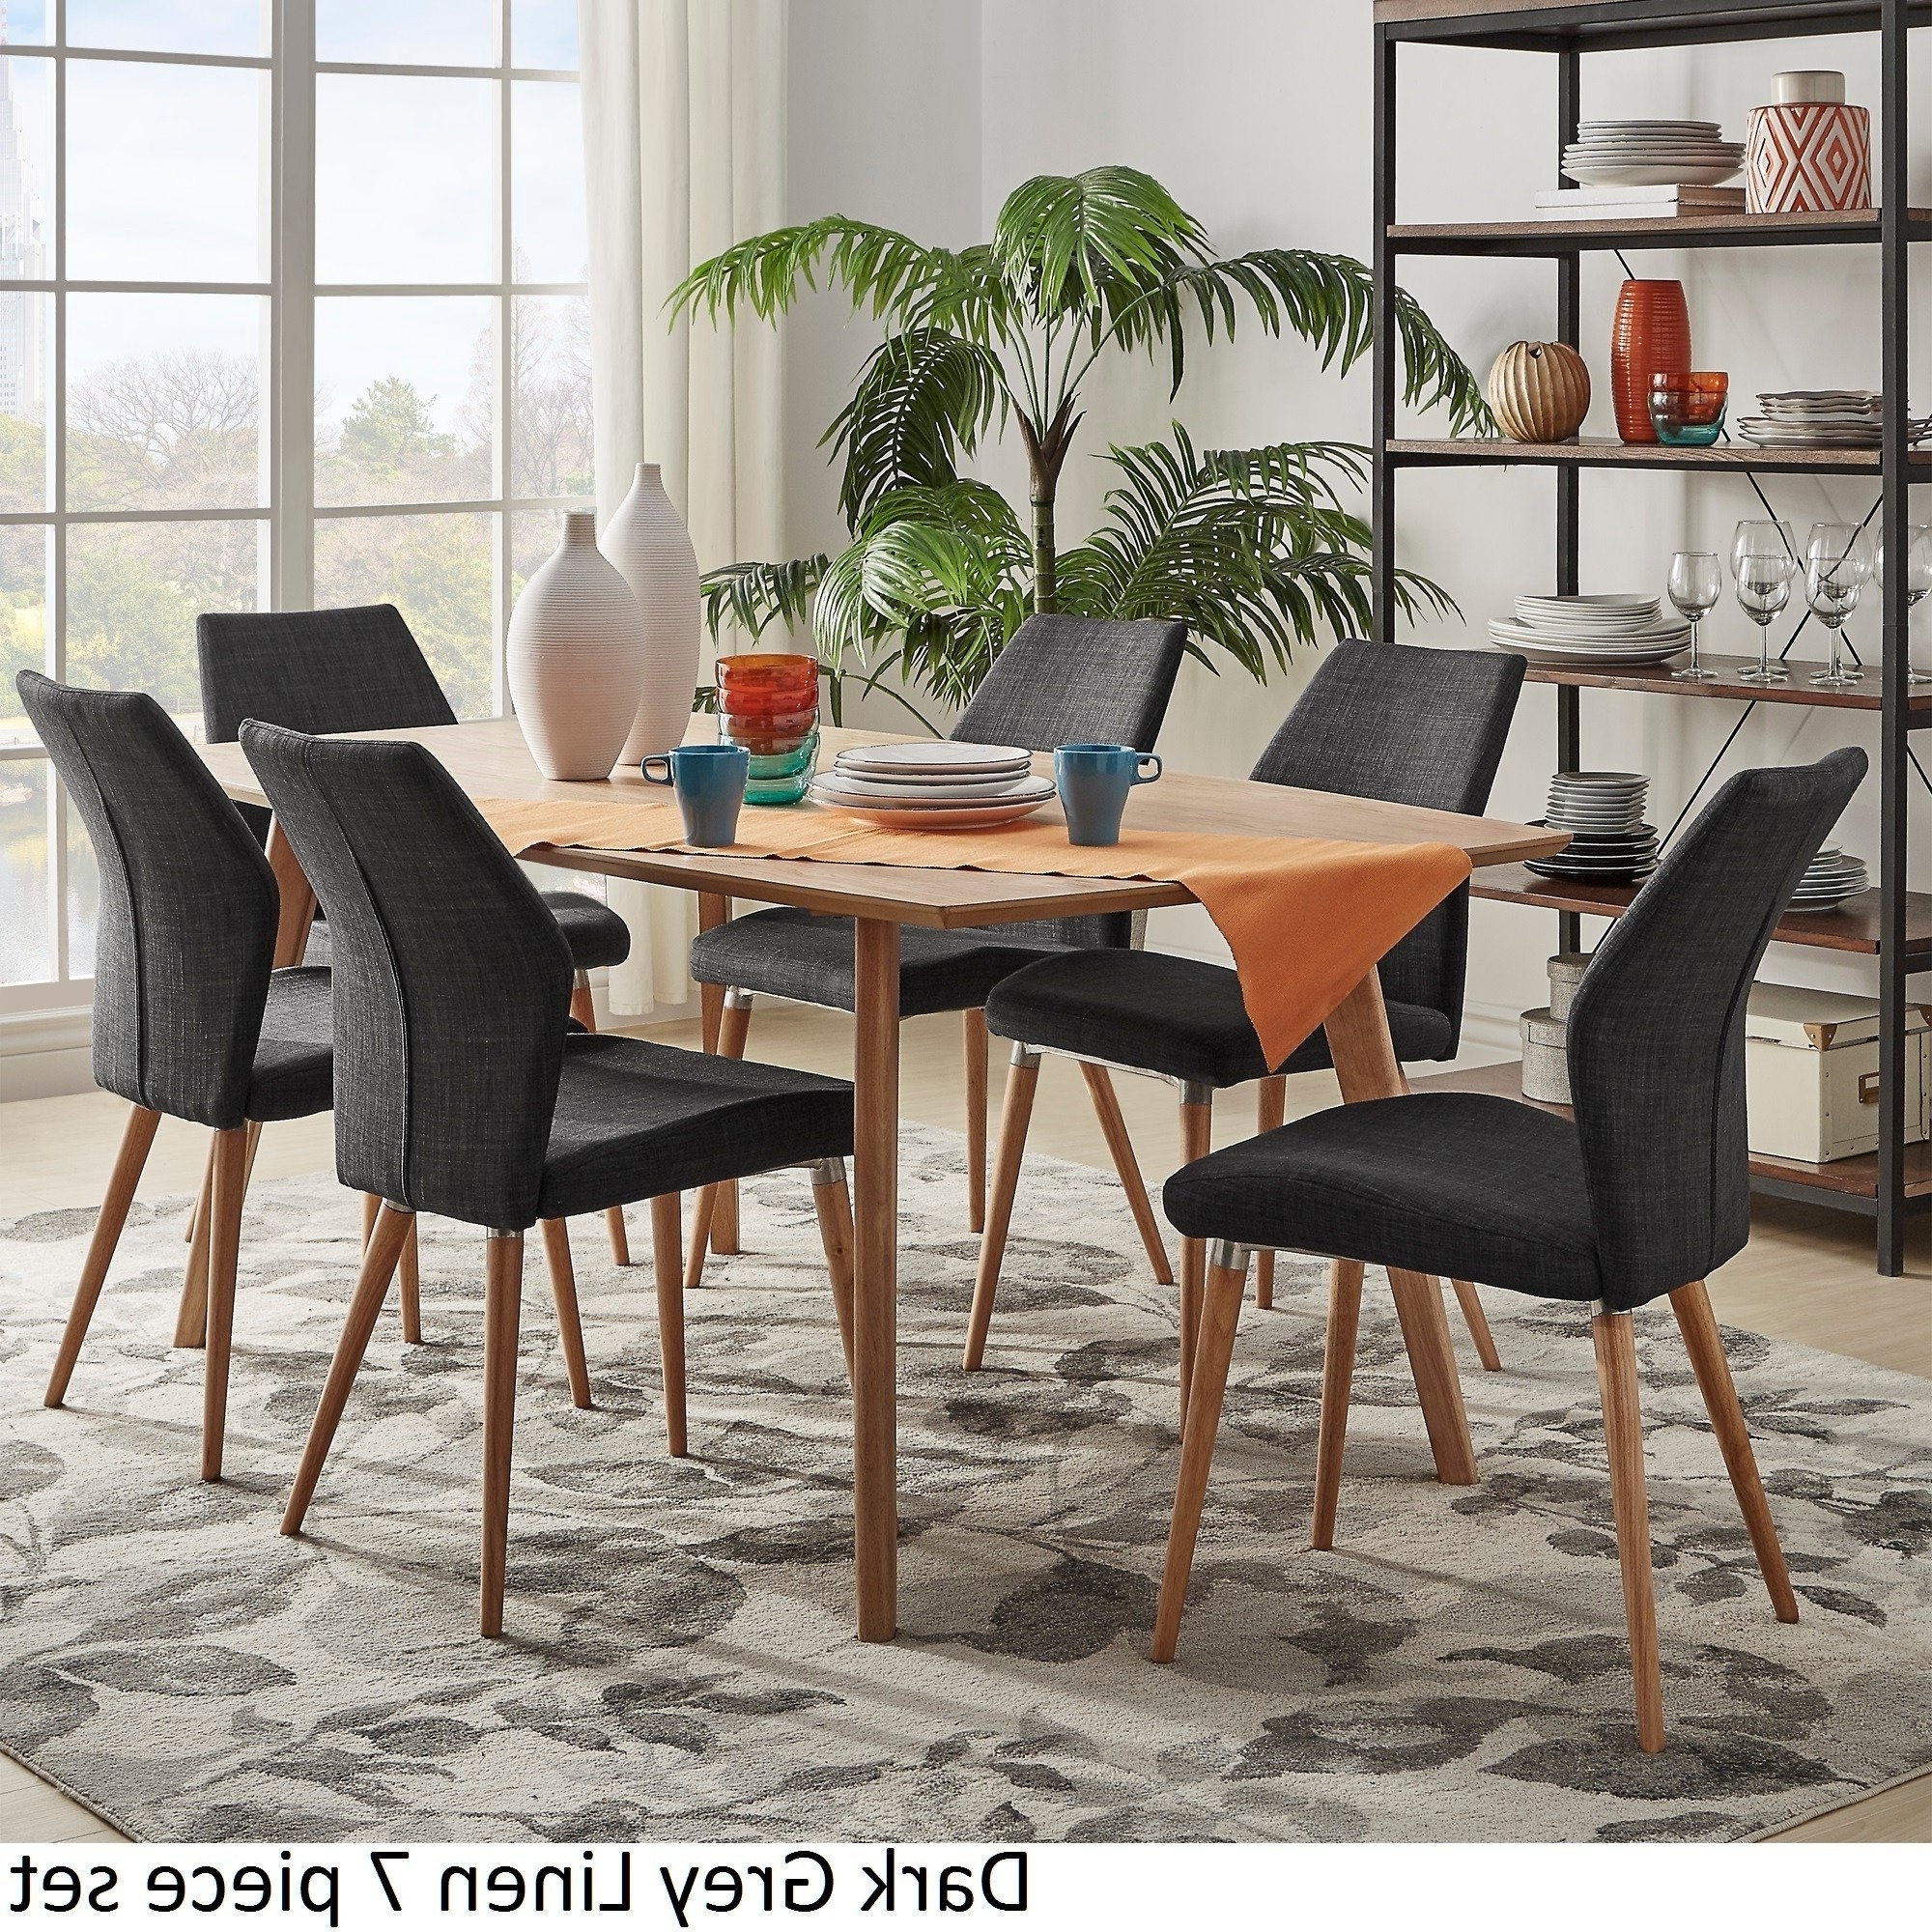 Caira Black 5 Piece Round Dining Sets With Upholstered Side Chairs With Regard To Latest Shop Abelone Scandinavian Oak Dining Set Inspire Q Modern – On Sale (Gallery 18 of 25)